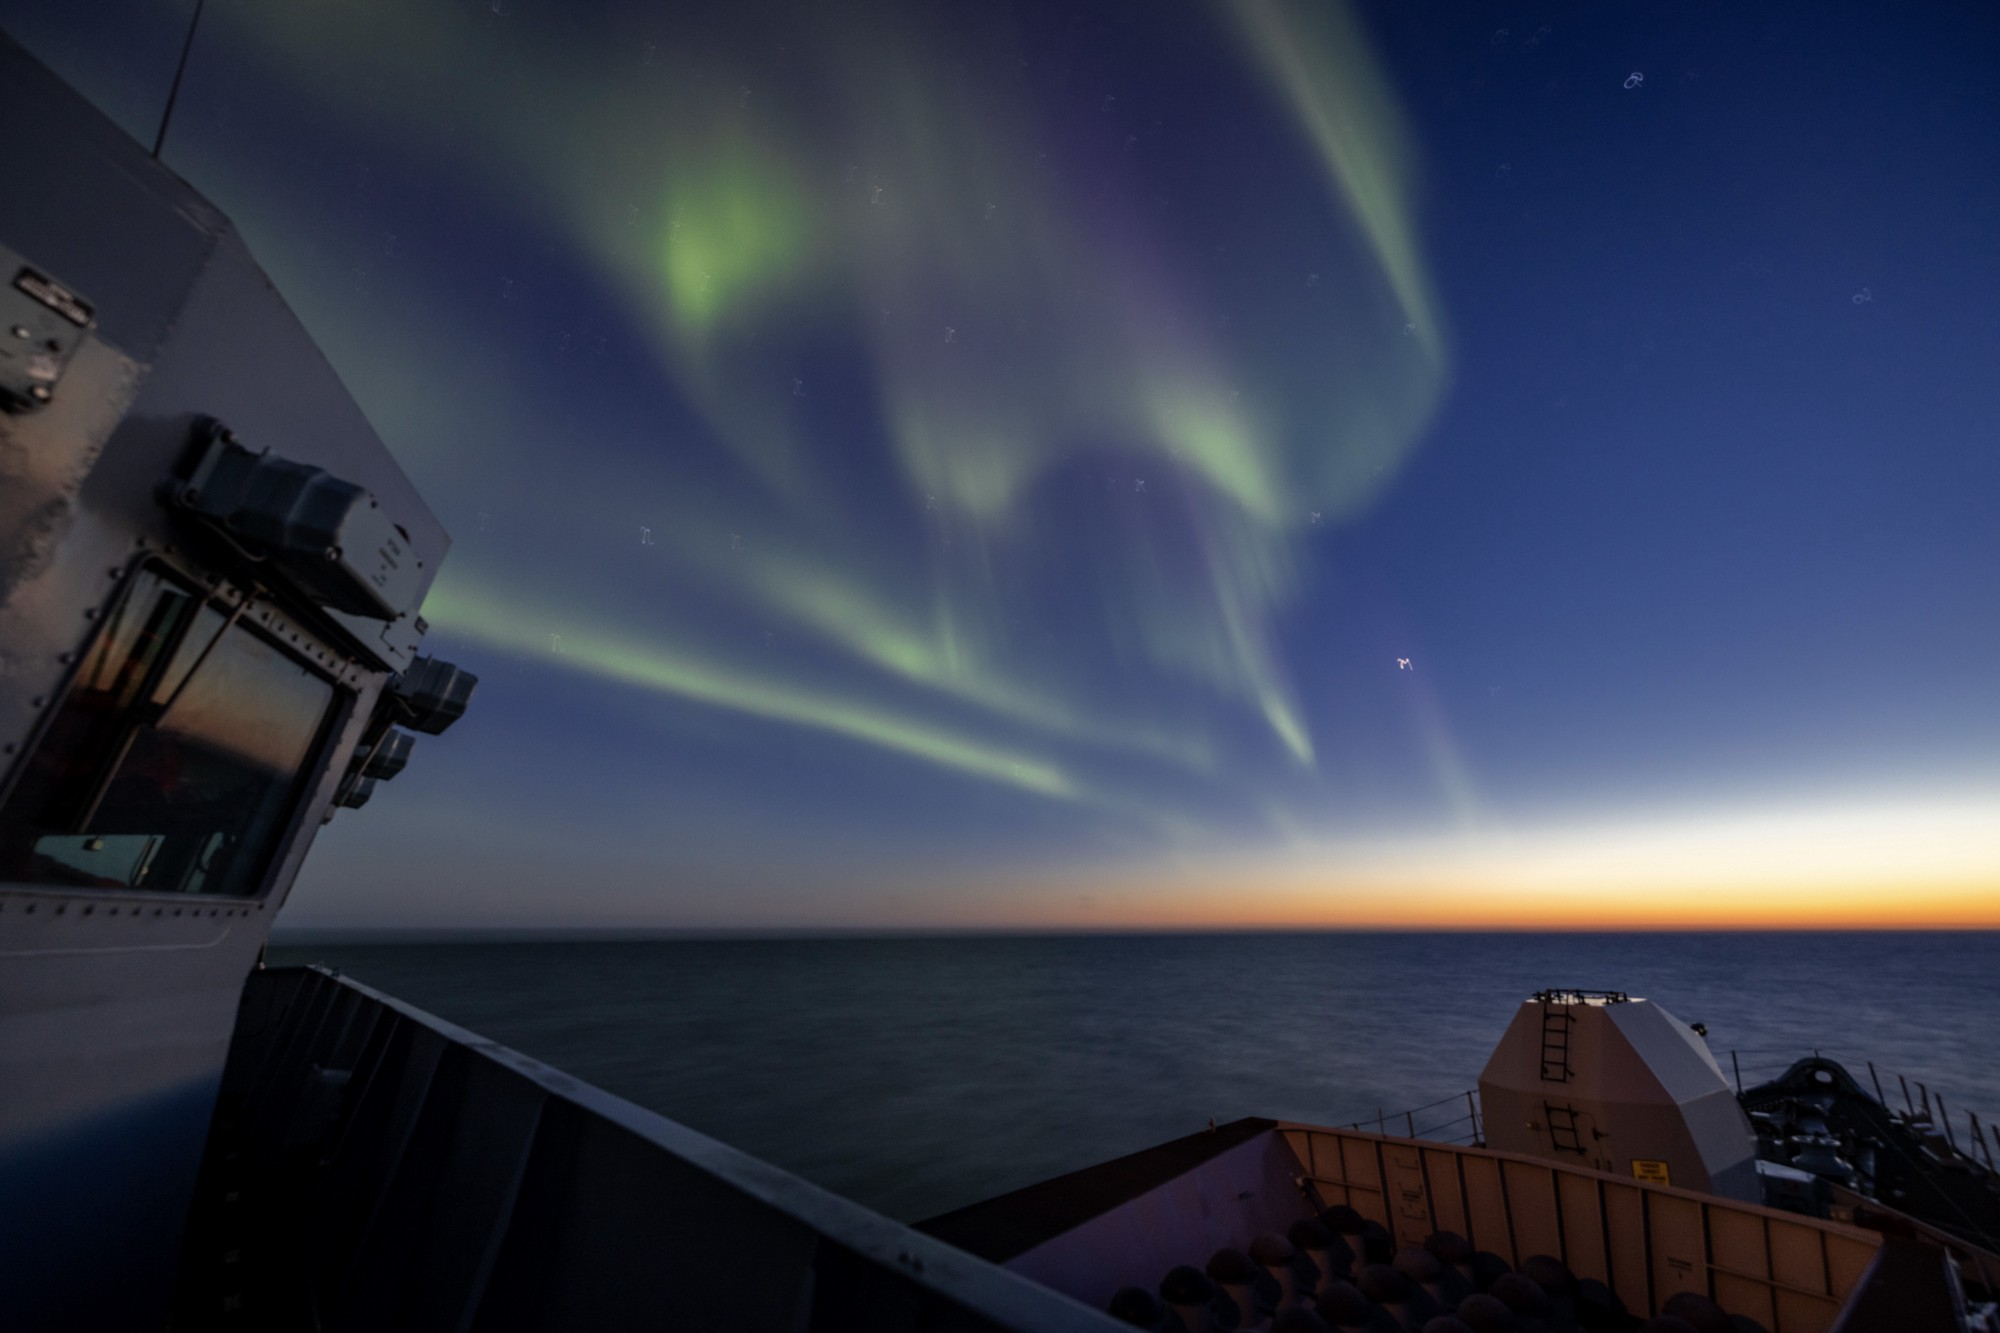 HMS Lancaster takes in the stunning lights display in the Arctic.